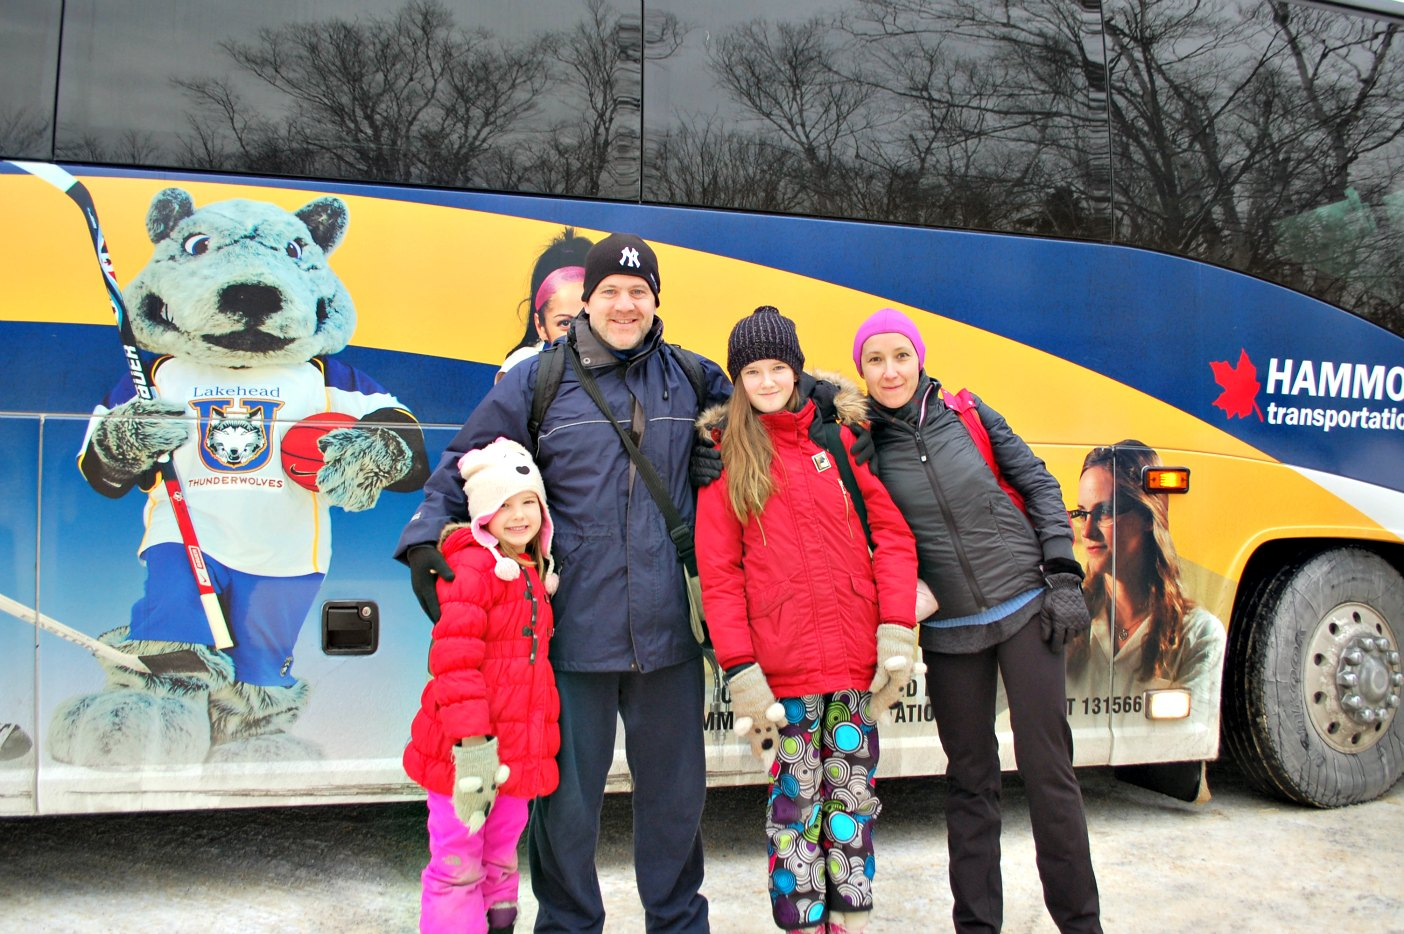 The Burkes, from left Victoria, Geoff, Vera, and Marina, are excited that Parkbus is now making winter daytrips